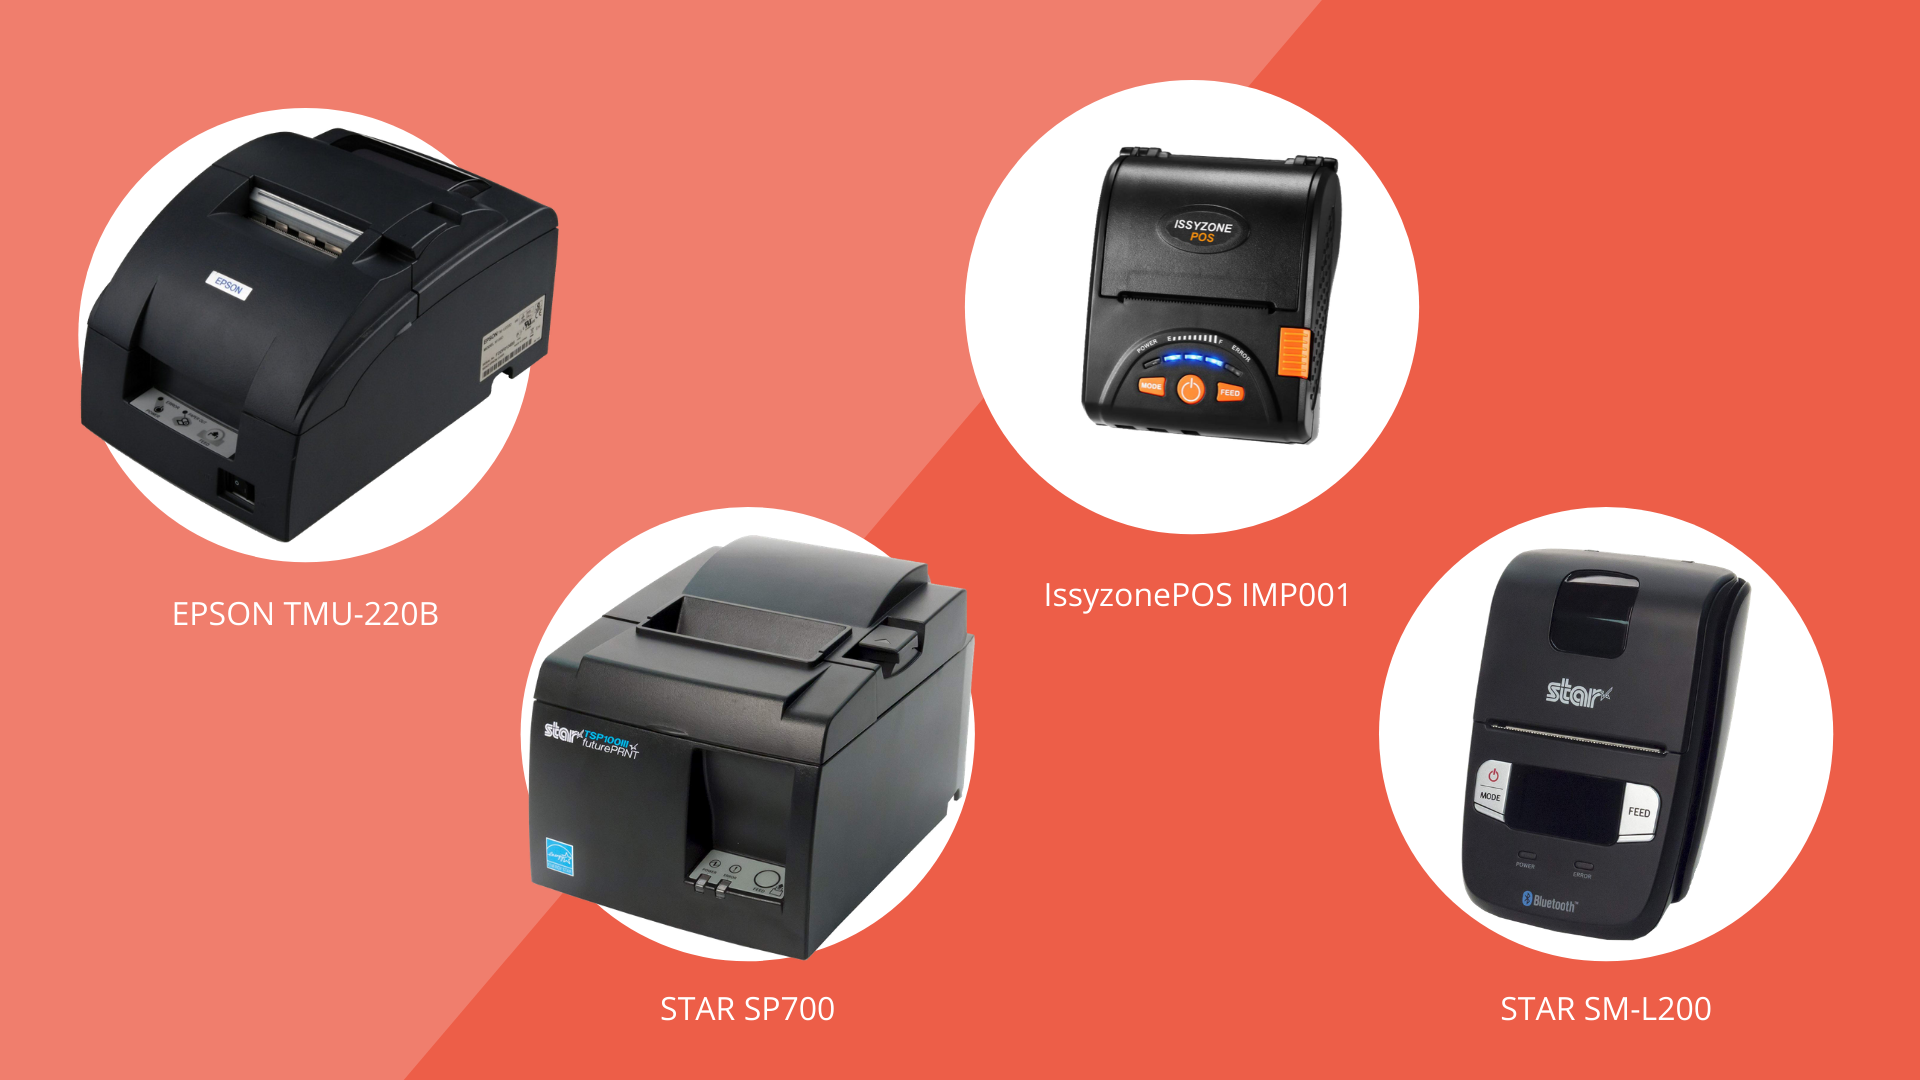 epson-star-issyzone-printer